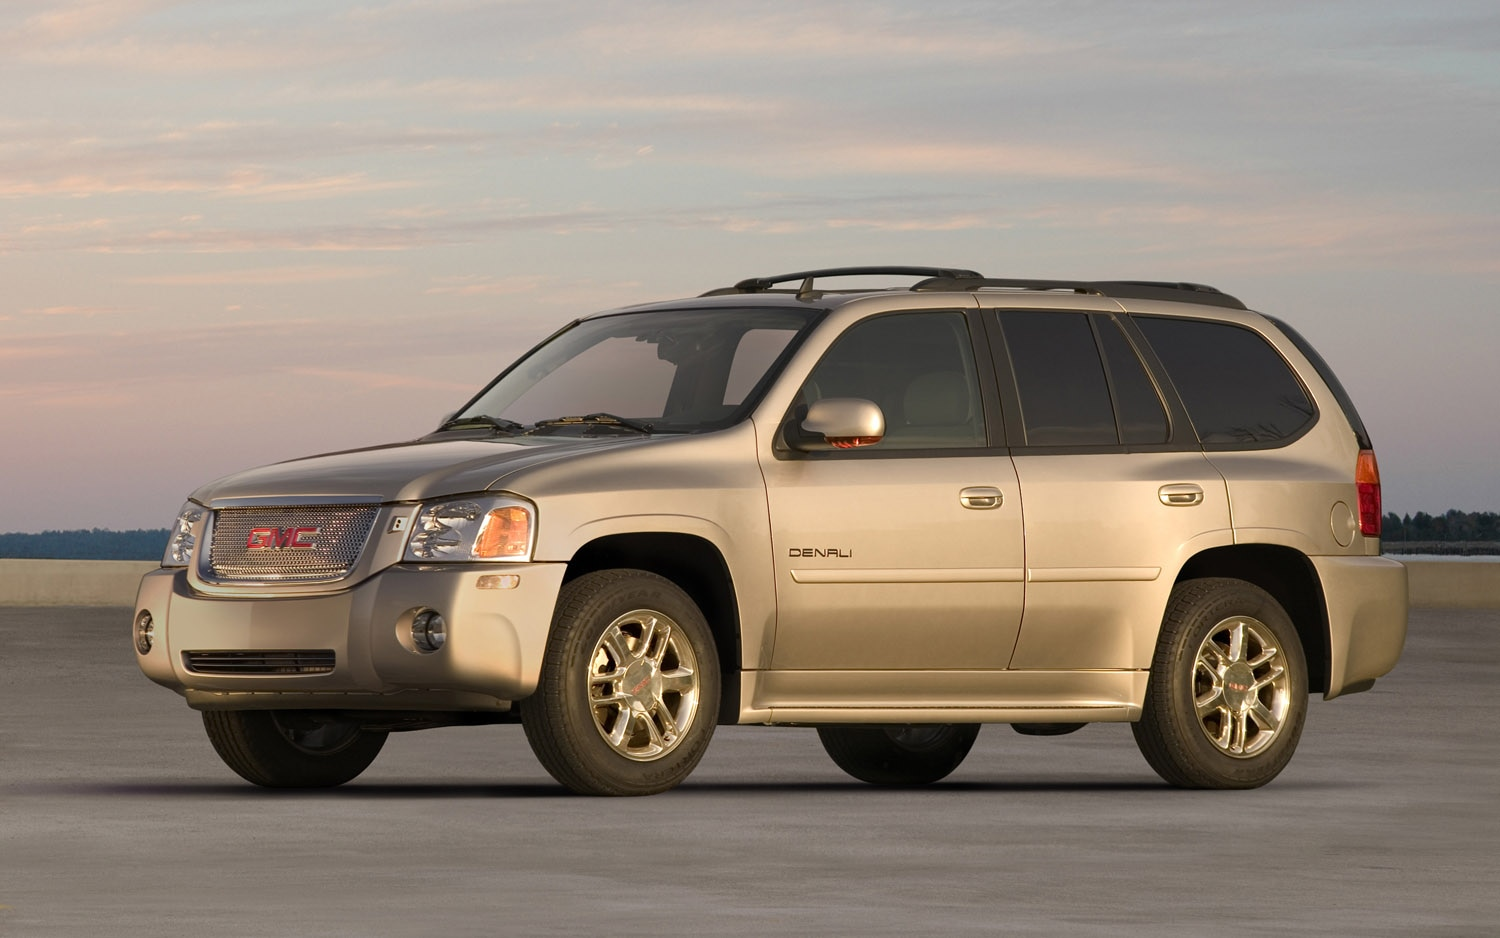 gm recalls 7 3 million more cars for ignition switch fault gm recalls 7 3 million more cars for